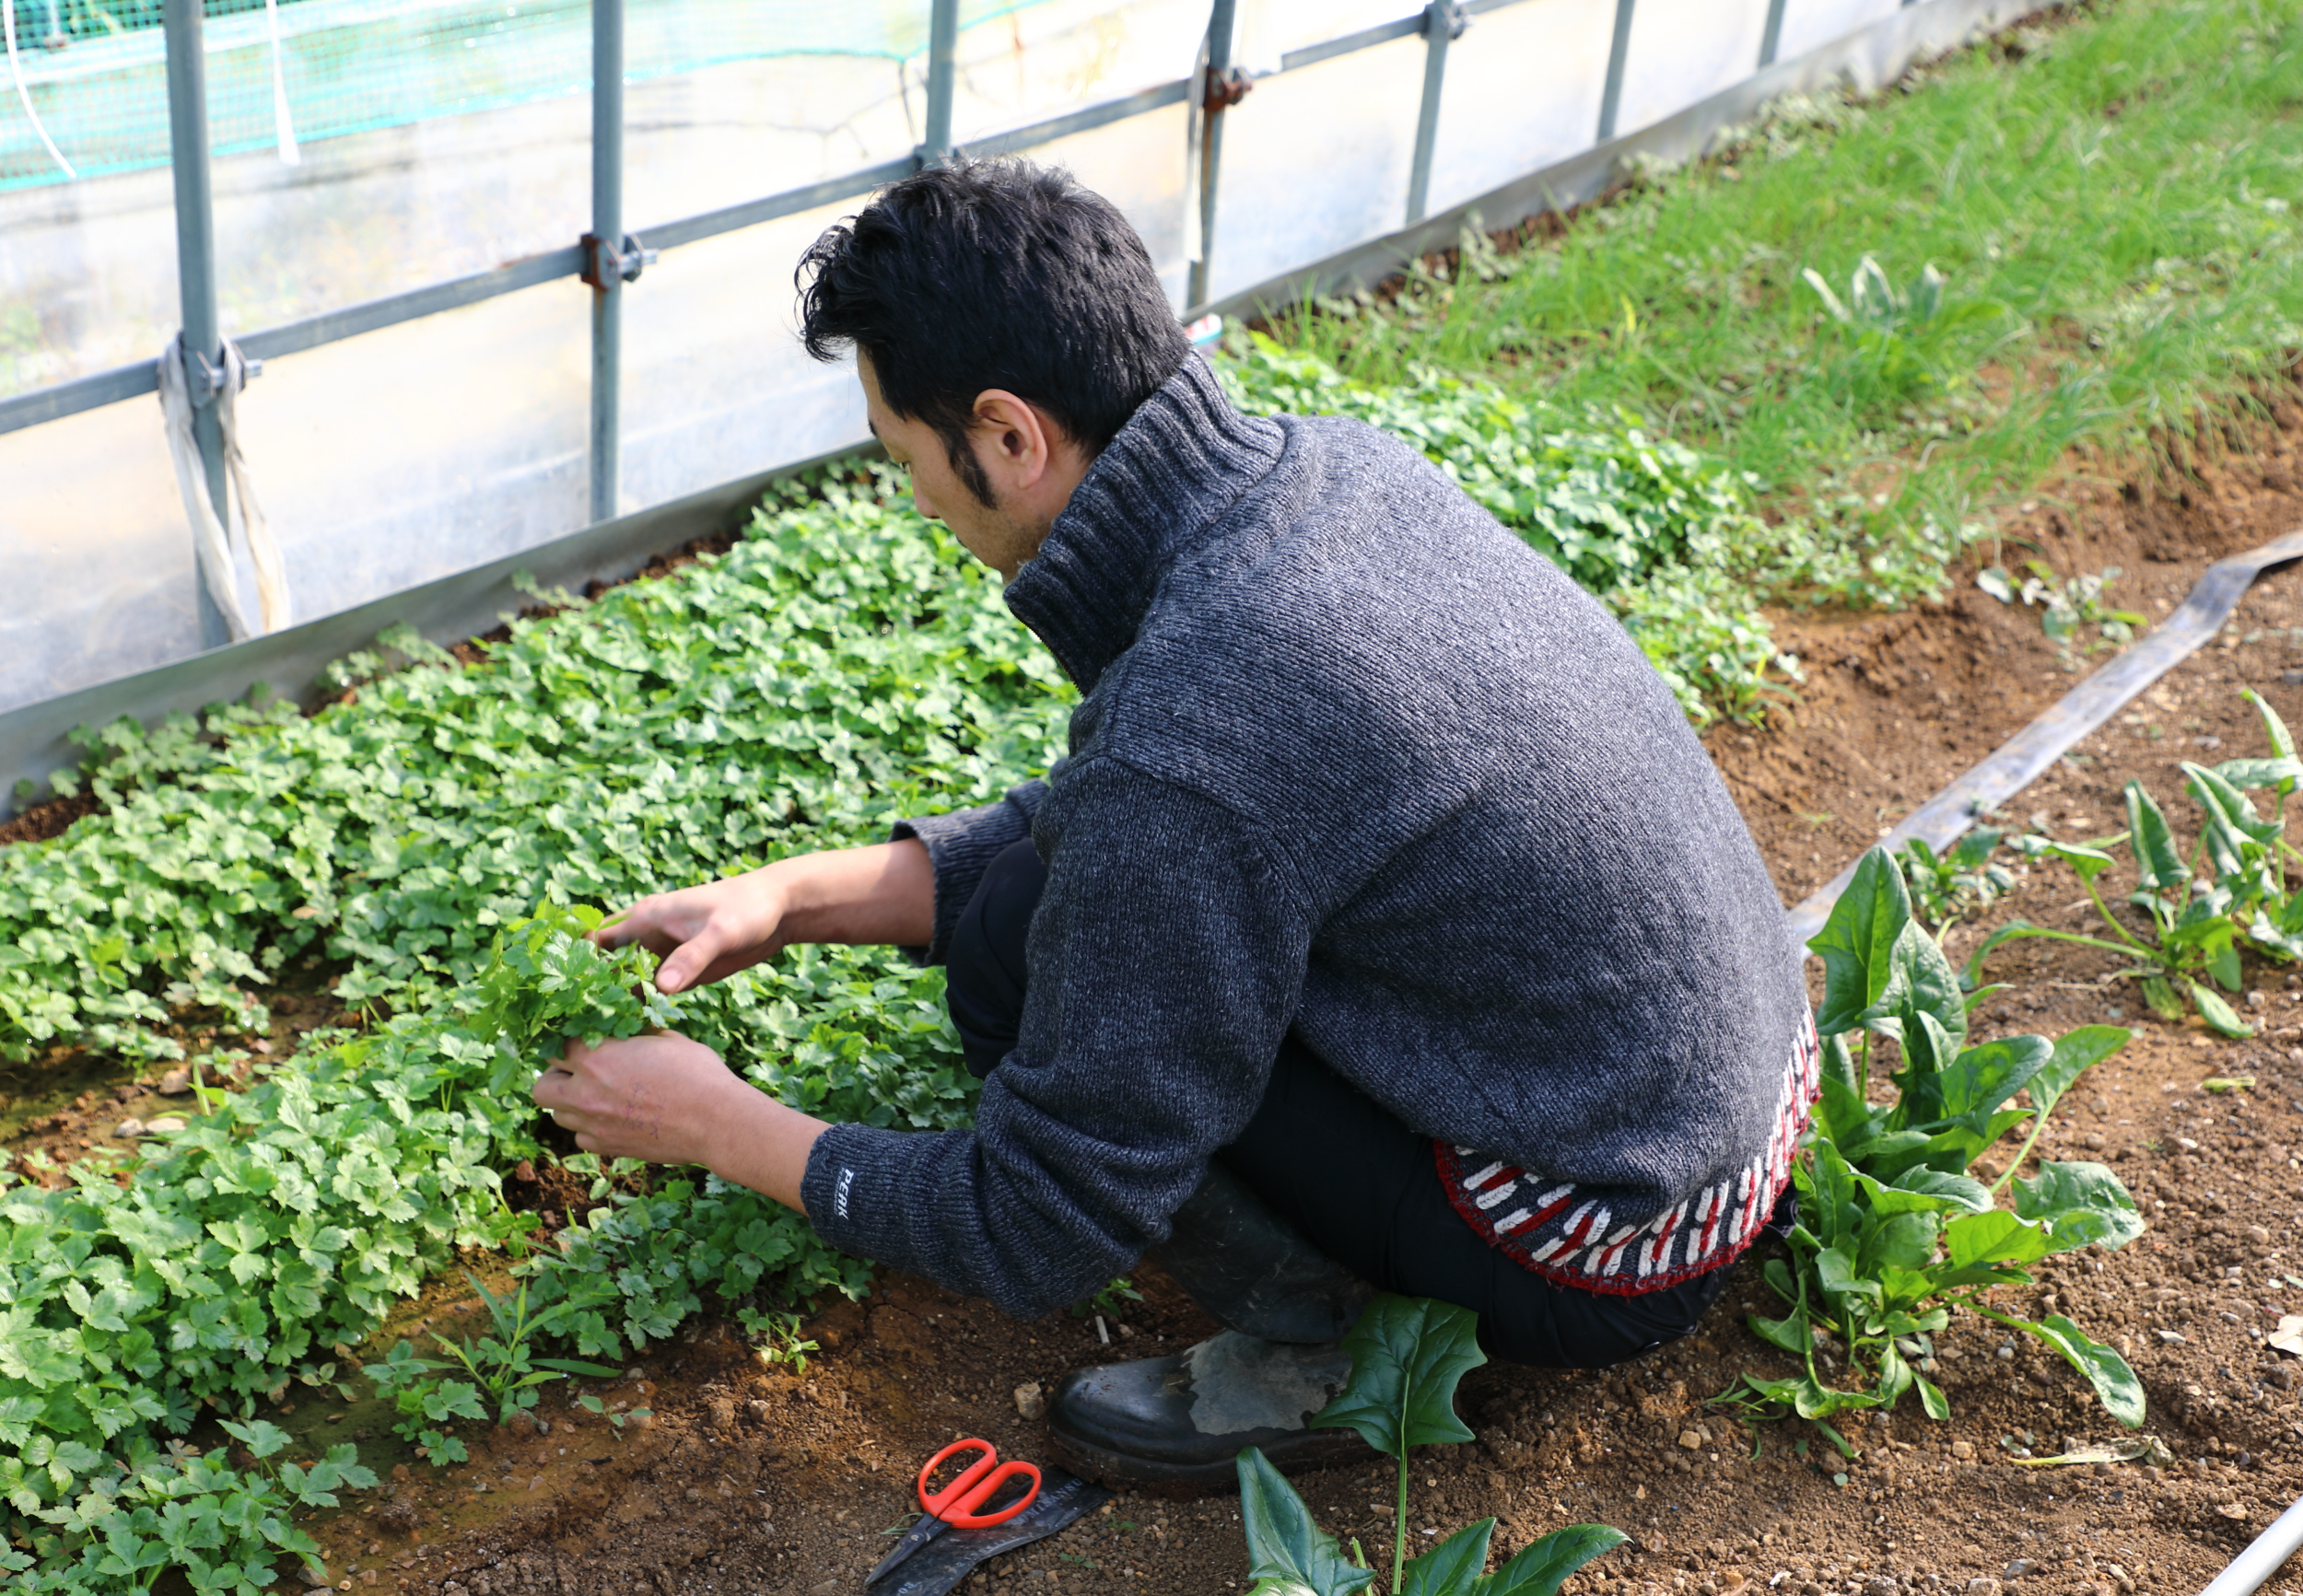 Shigeru gathering  mitsuba , an herb that will be used to season the evening's meal.